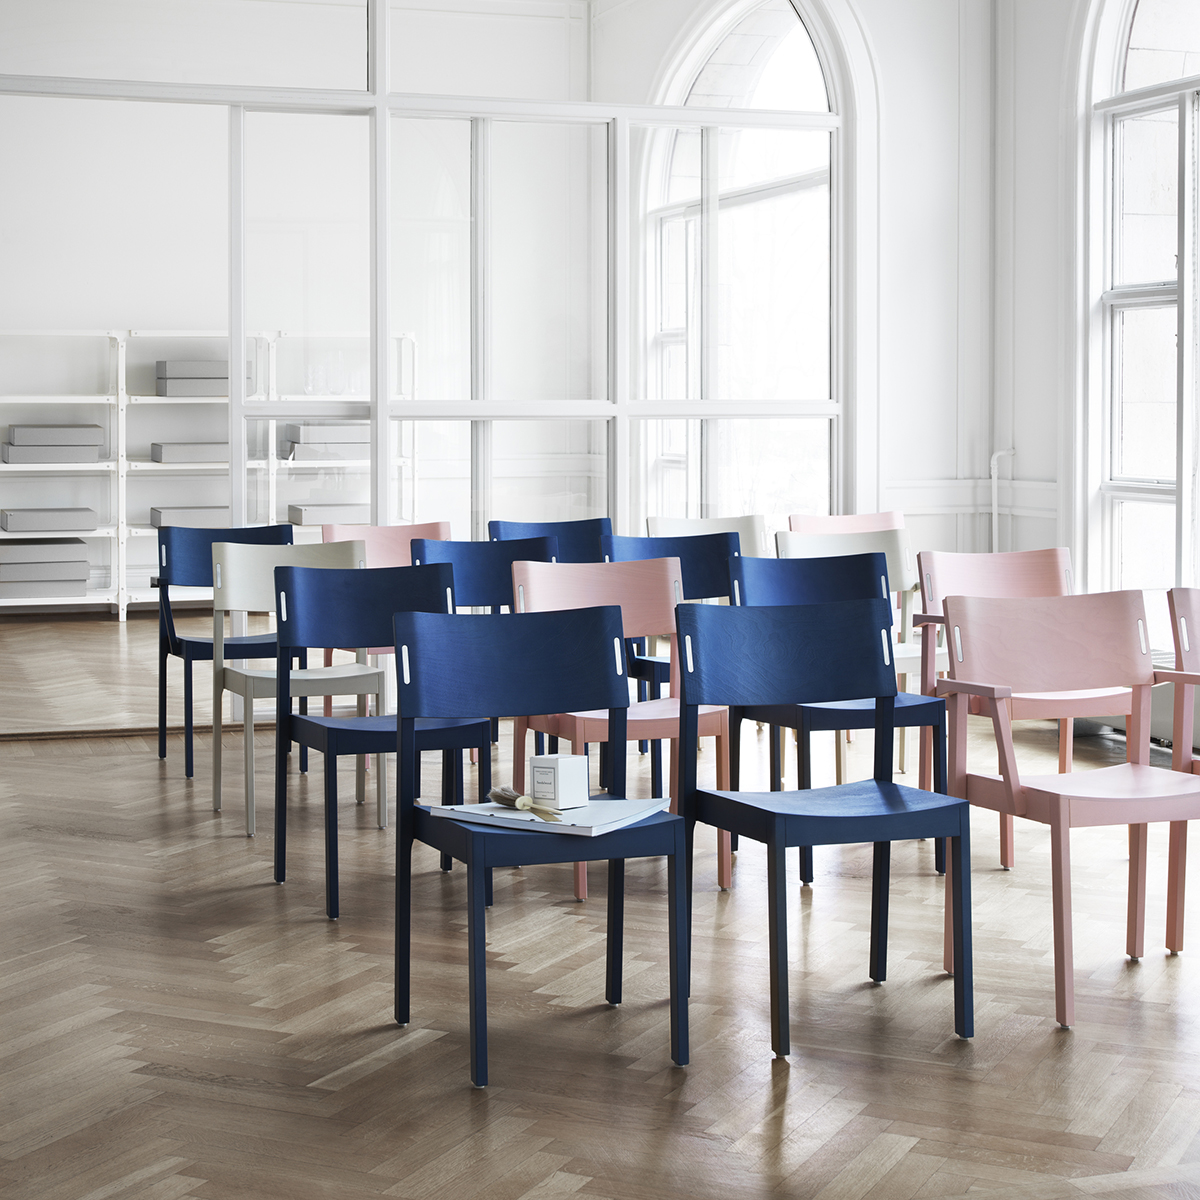 """""""Quietly does it... Classic chair/chair with arms with integral sound absorption material for a good acoustic environment."""" - Ruud Ekstrand (Designer)"""